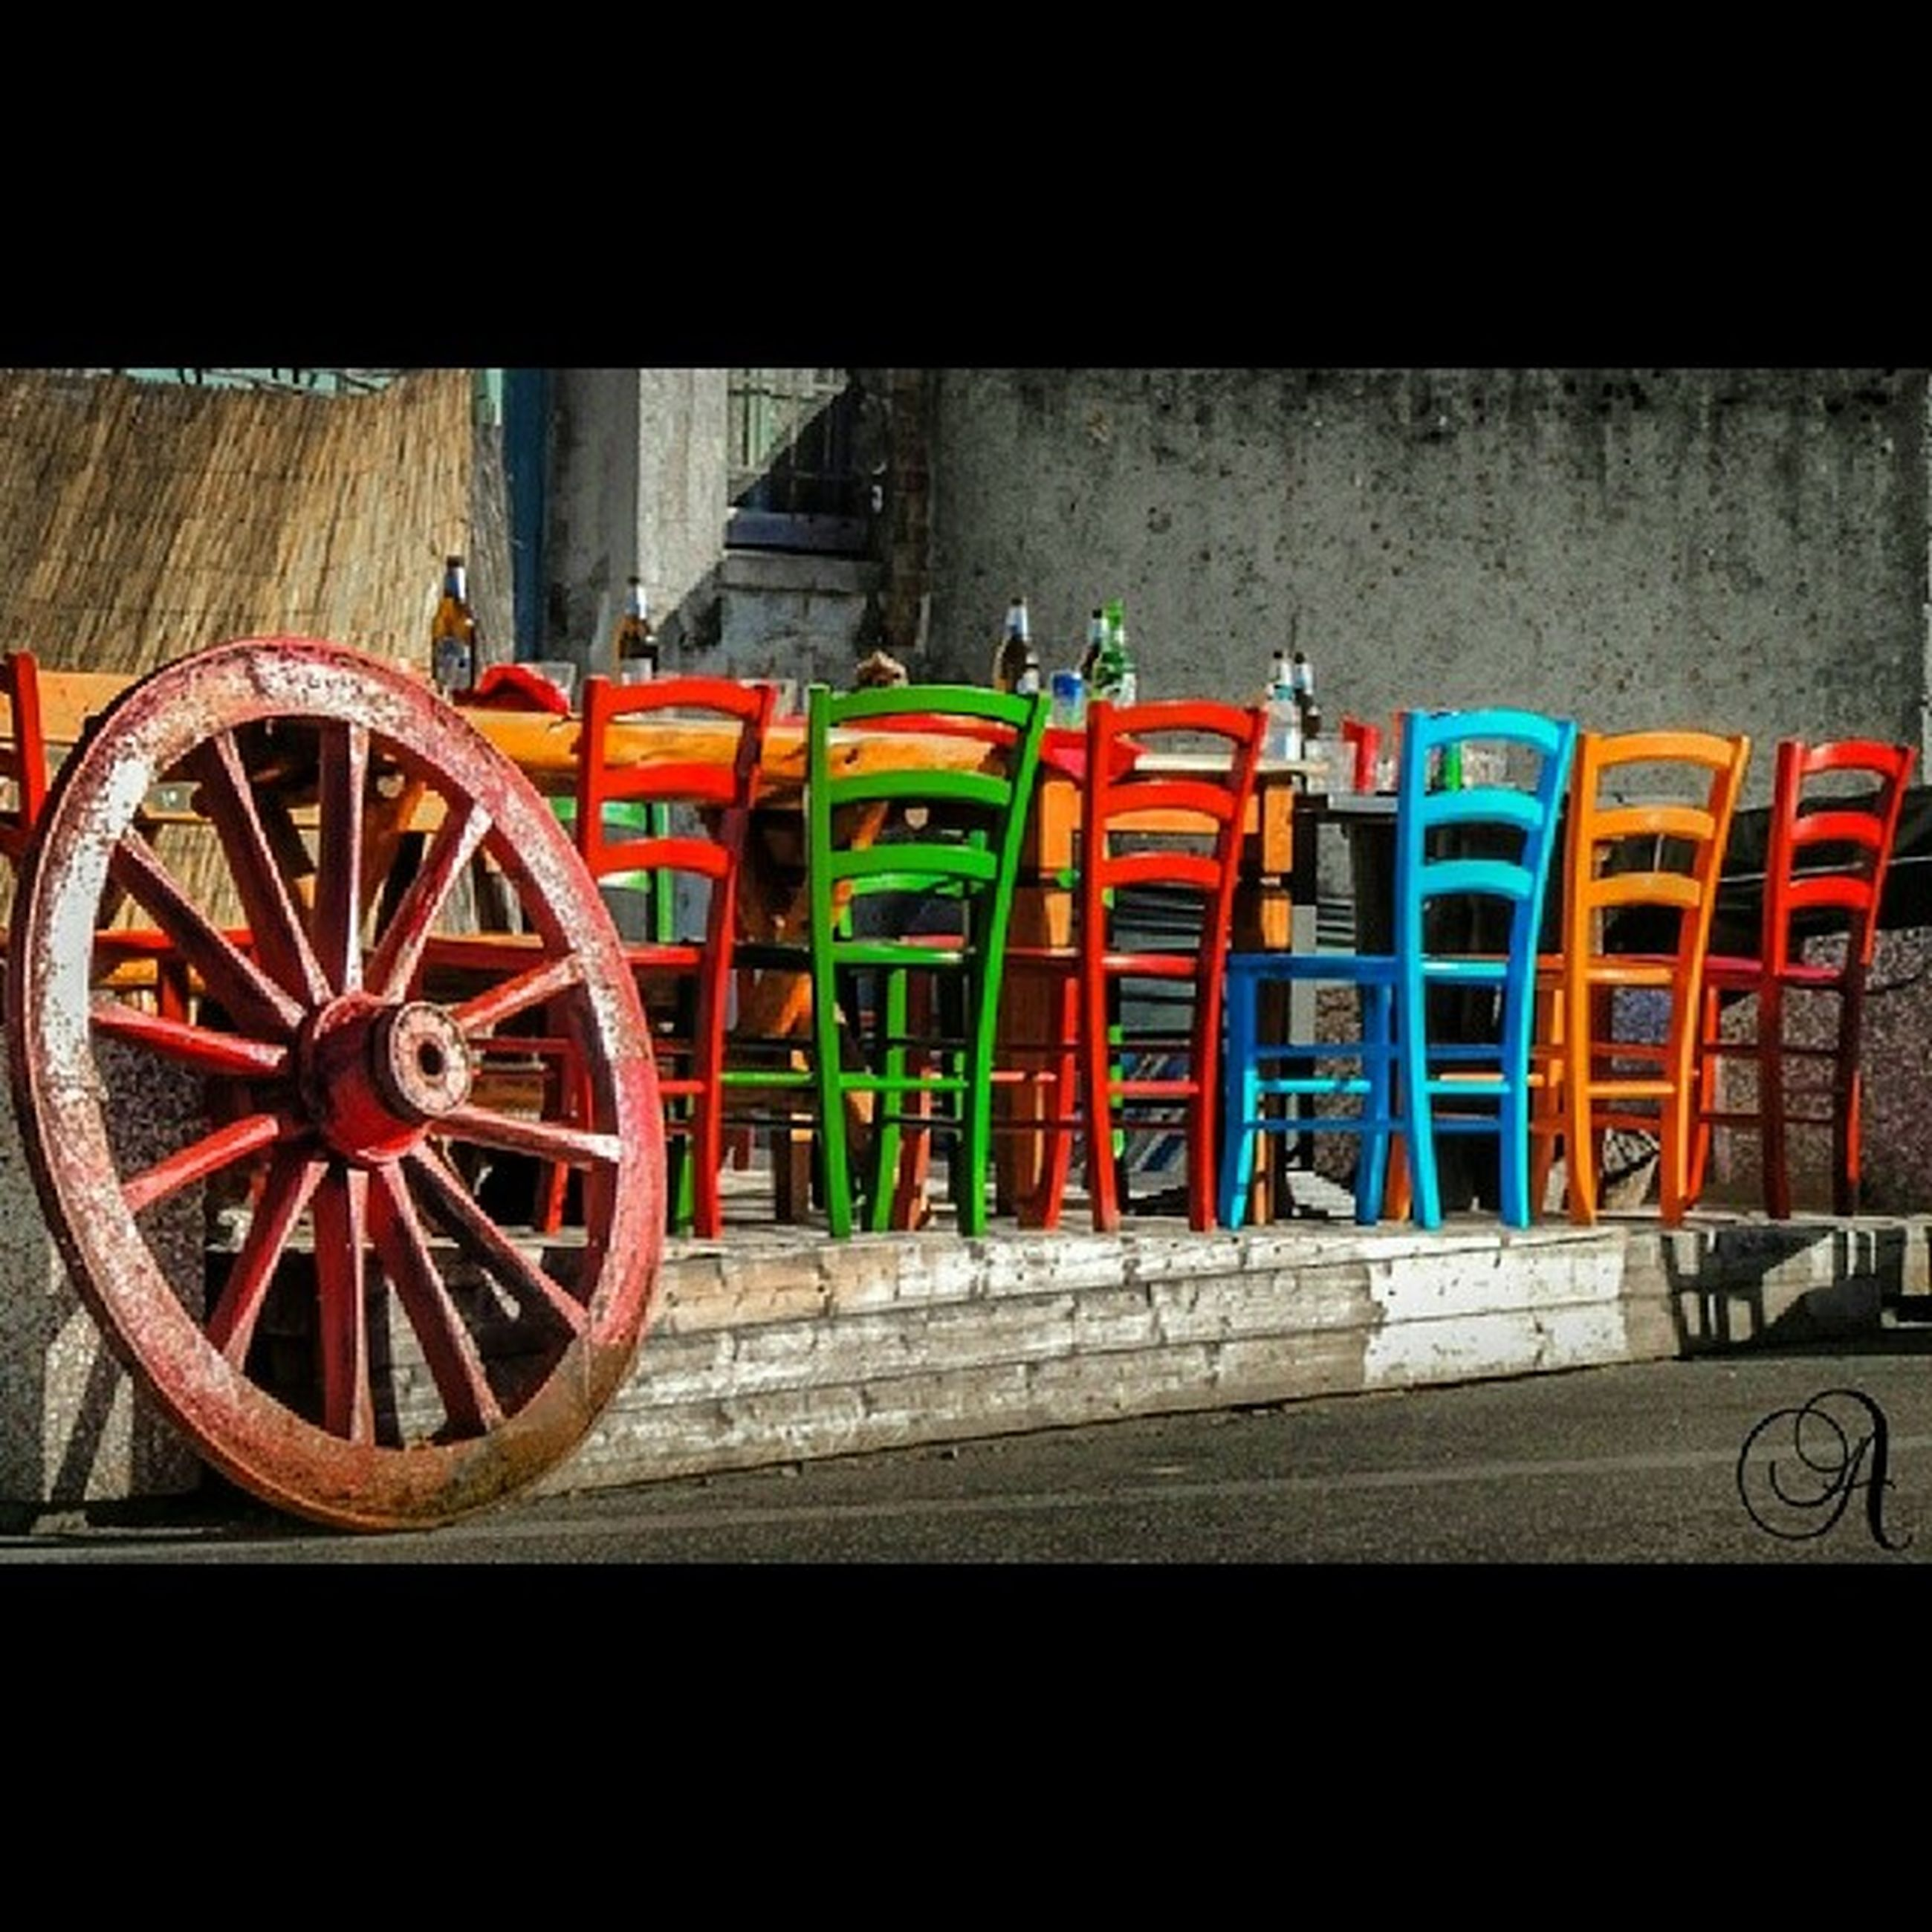 transportation, bicycle, mode of transport, wheel, stationary, land vehicle, wall - building feature, red, no people, built structure, outdoors, parking, day, parked, architecture, auto post production filter, graffiti, multi colored, railing, metal